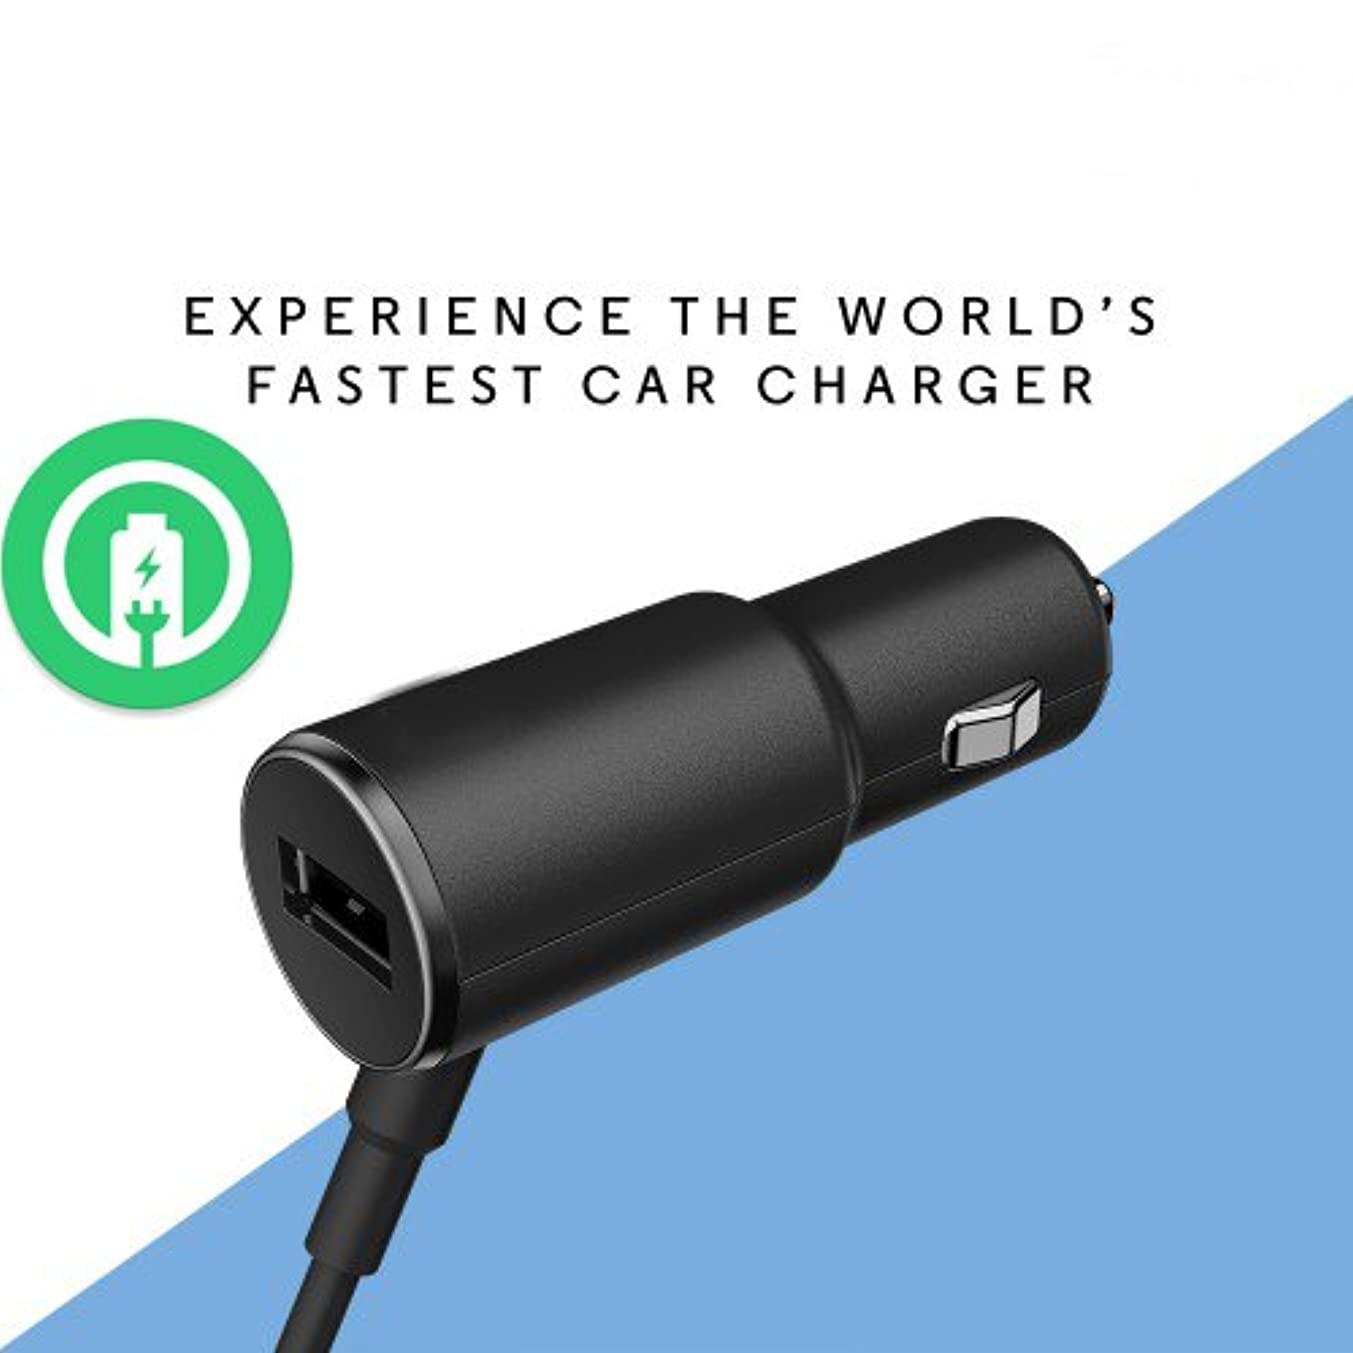 Turbo Fast Powered 25W Car Charger Works for Kyocera DuraXV LTE with Extra USB Port and Long Hi-Power MicroUSB Cable!